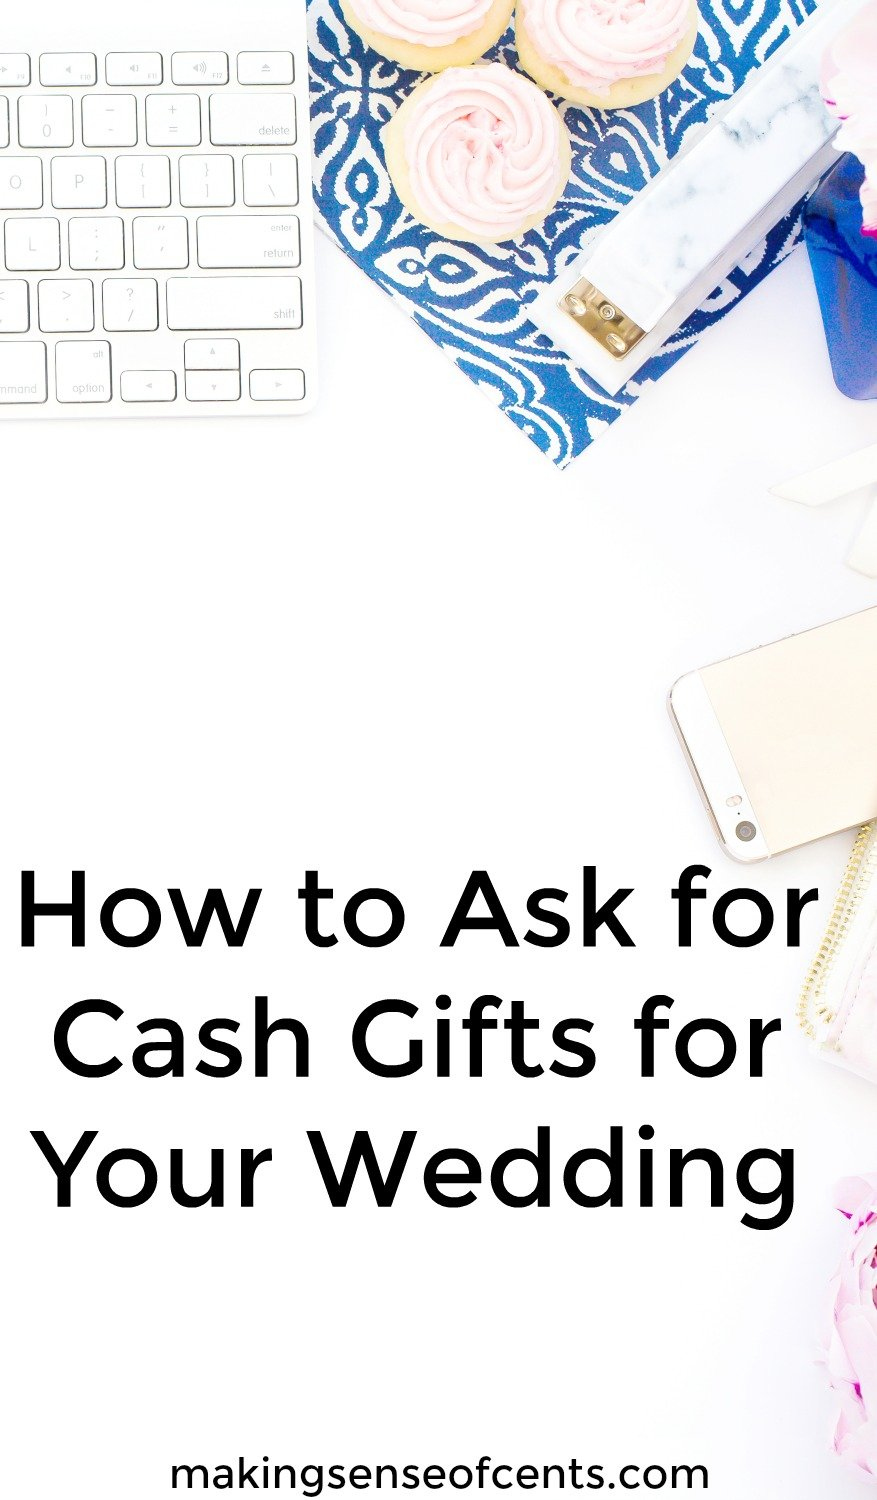 Find out how to ask for cash gifts for your wedding. This is a helpful article!